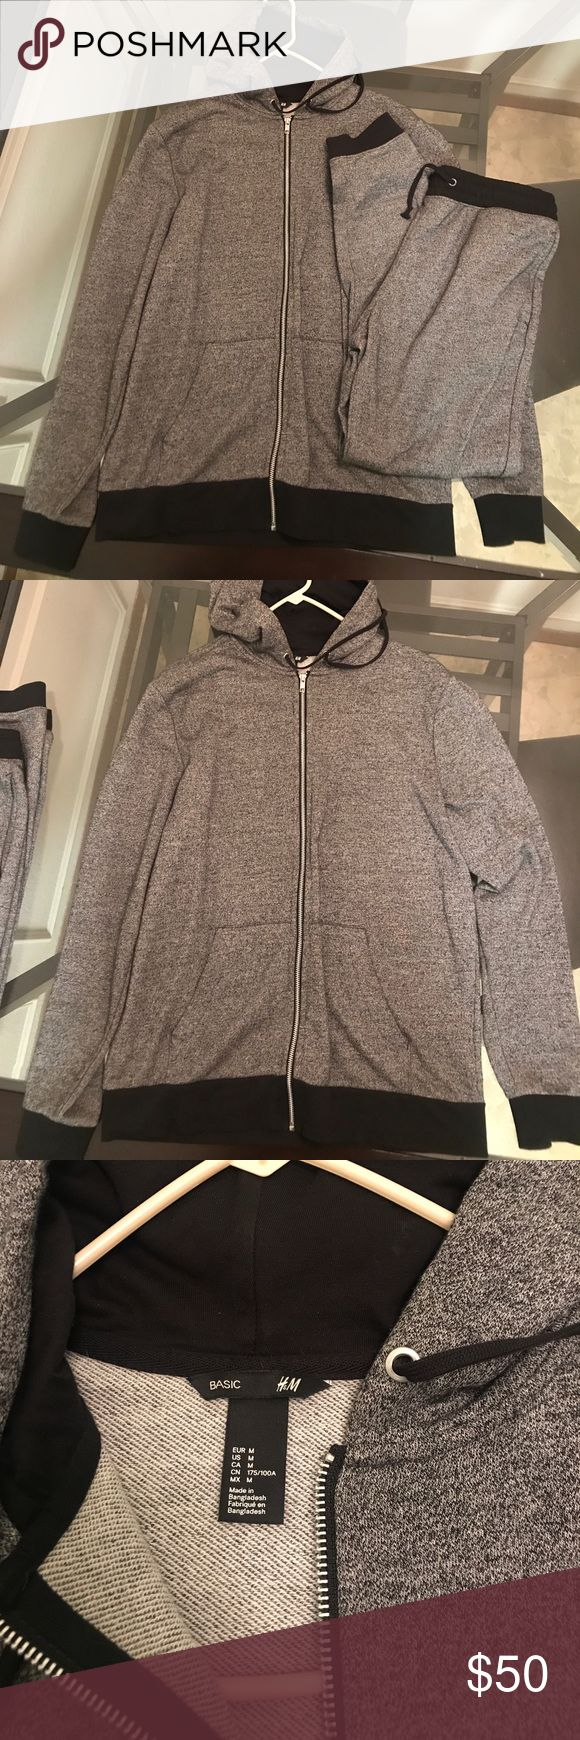 H&M jogging suit Black and grey light jogging suit in excellent condition no stains no flaws H&M Shirts Sweatshirts & Hoodies